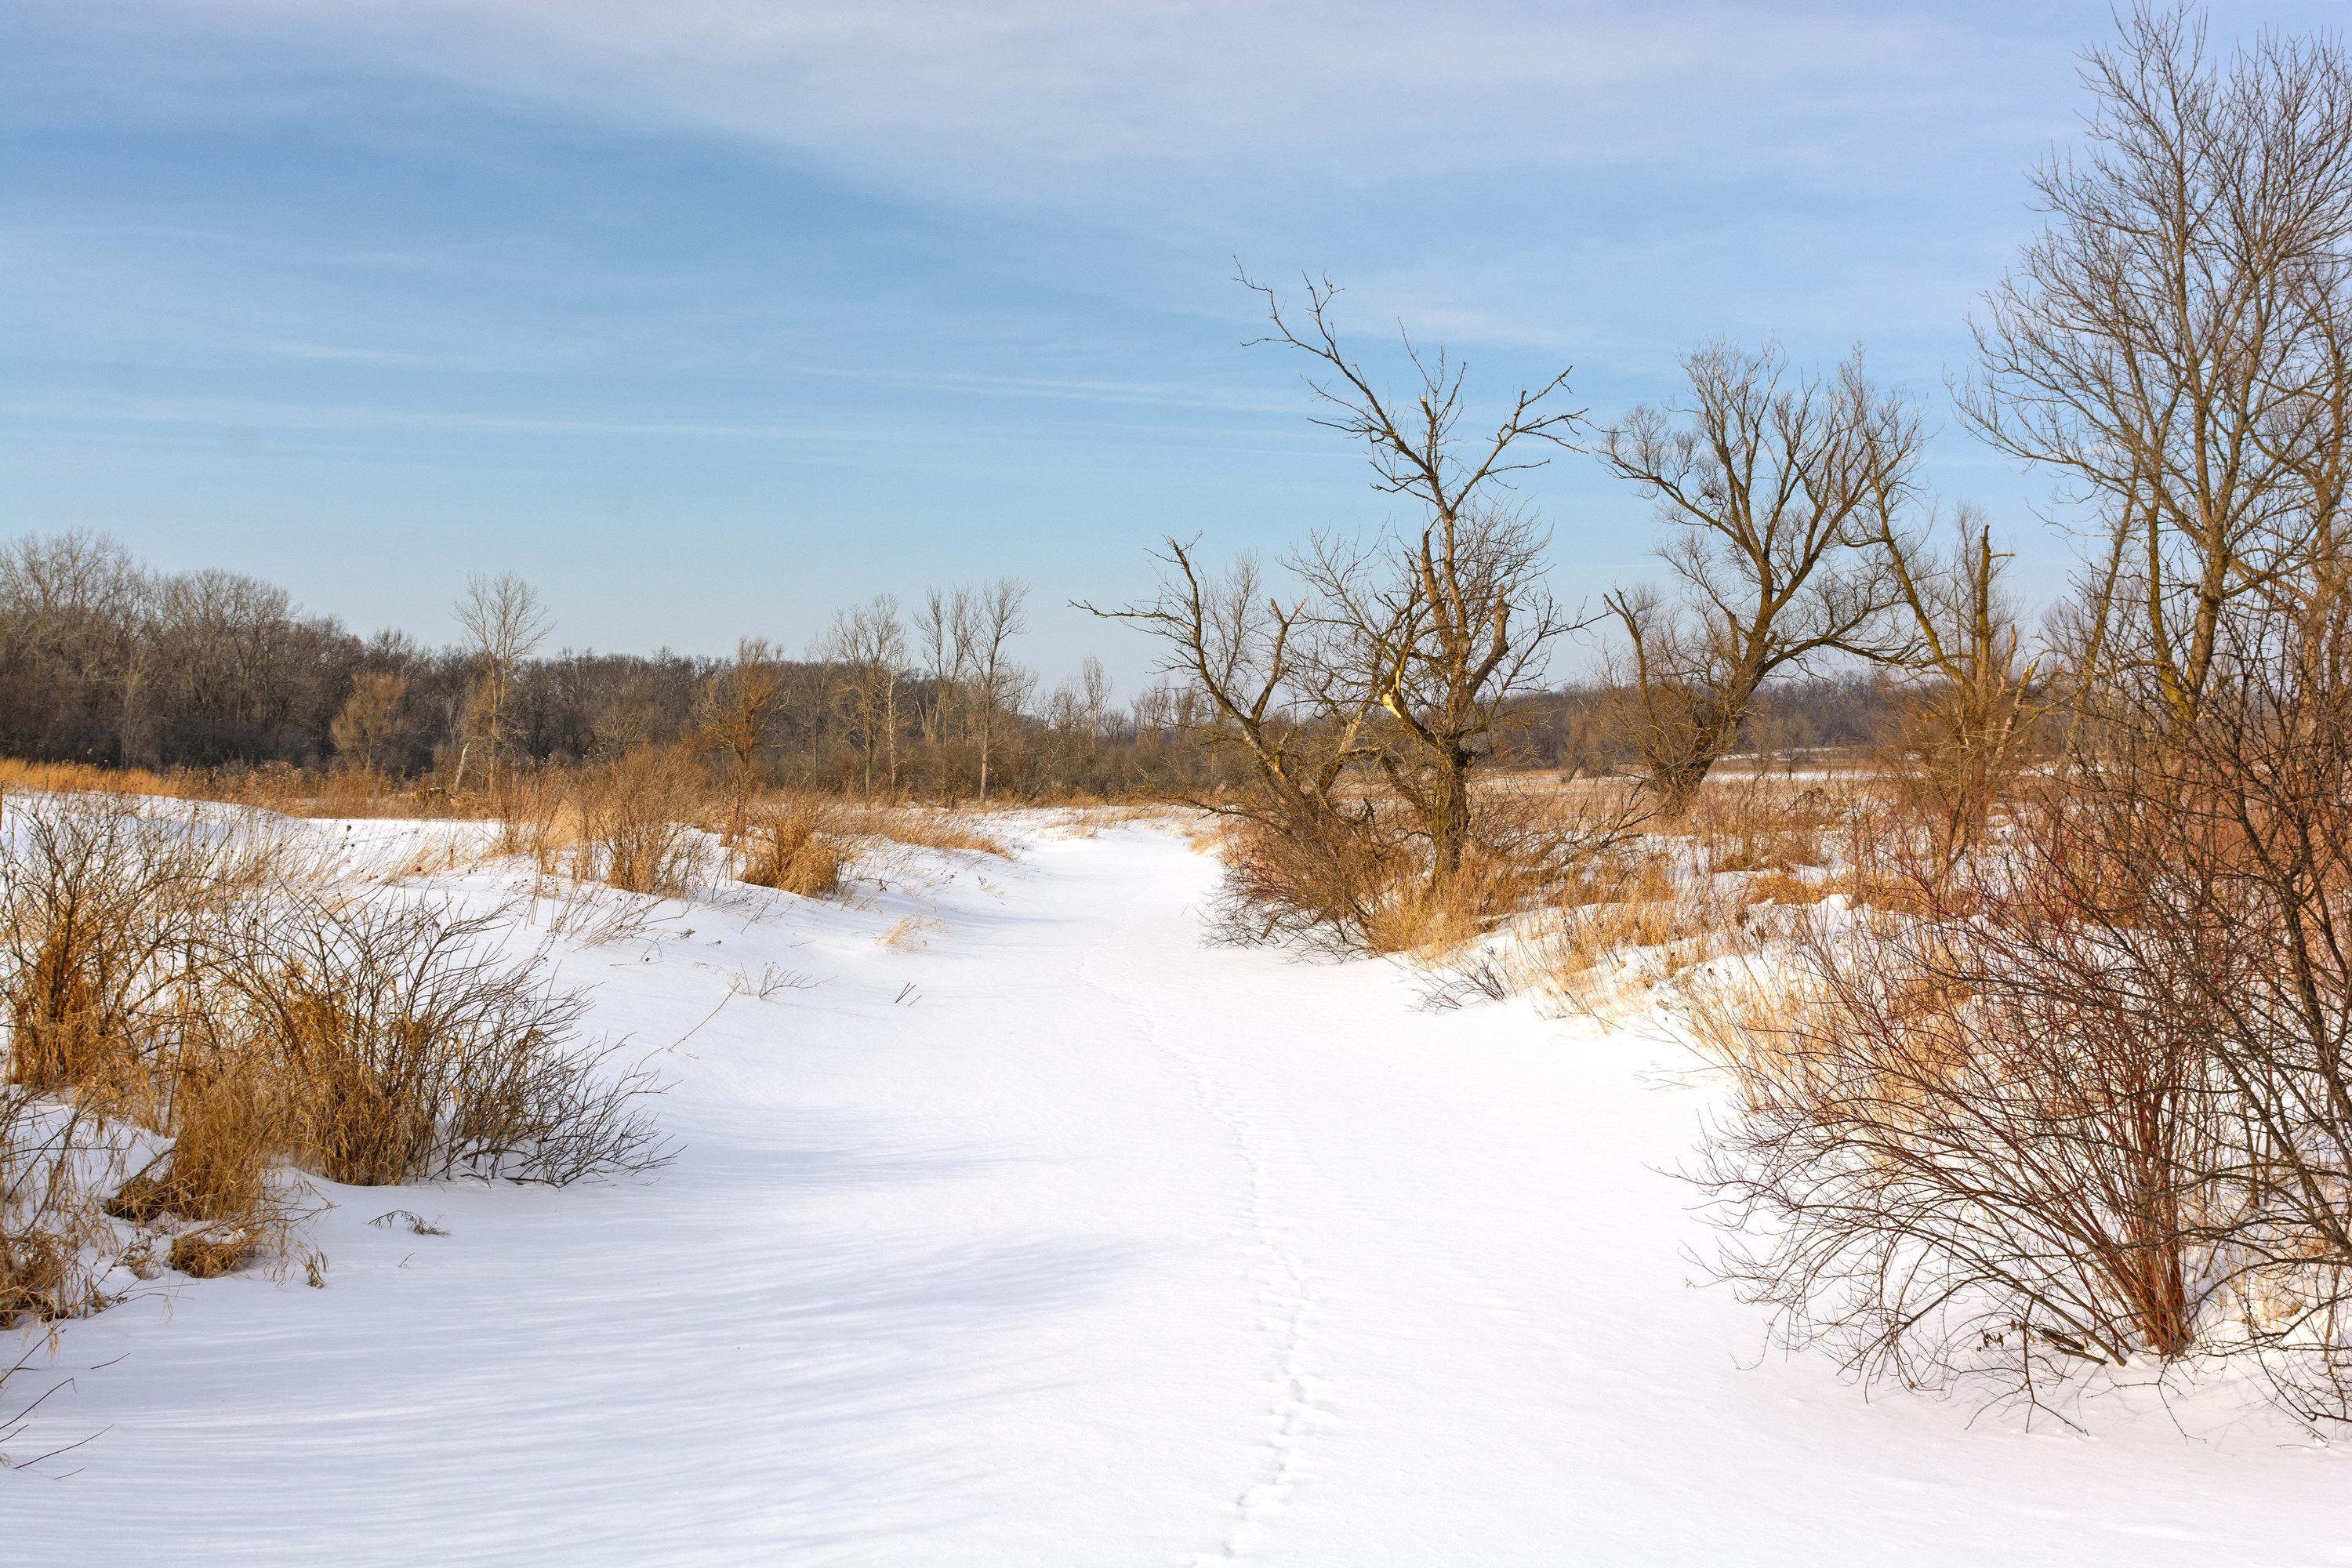 Photo of the state park in winter